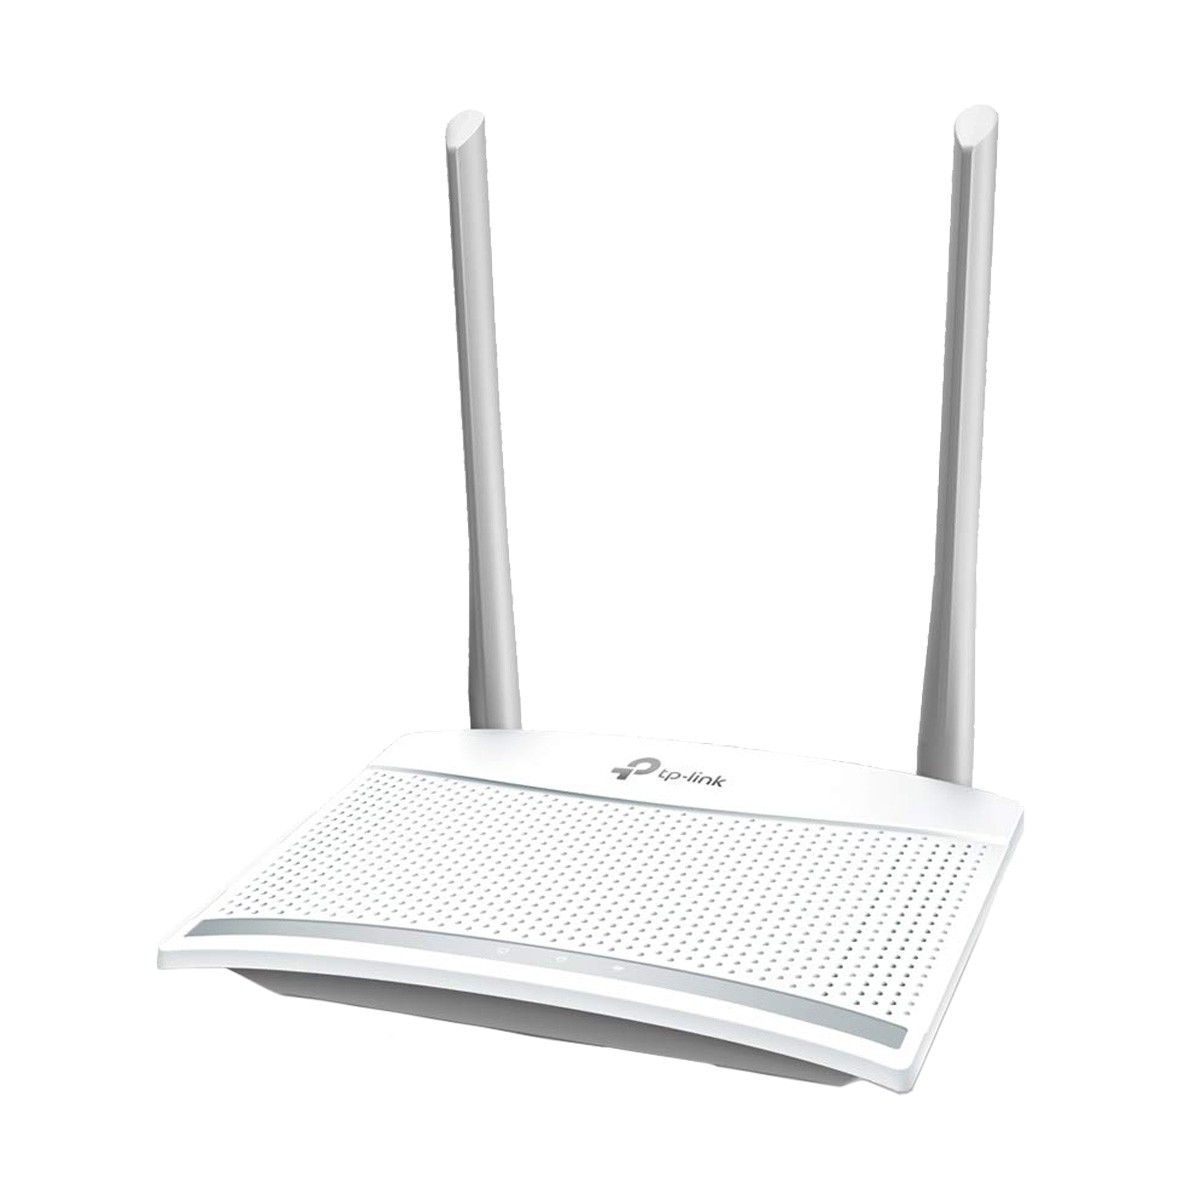 Roteador Sem fio Wireless TPlink WR820n 300Mbps